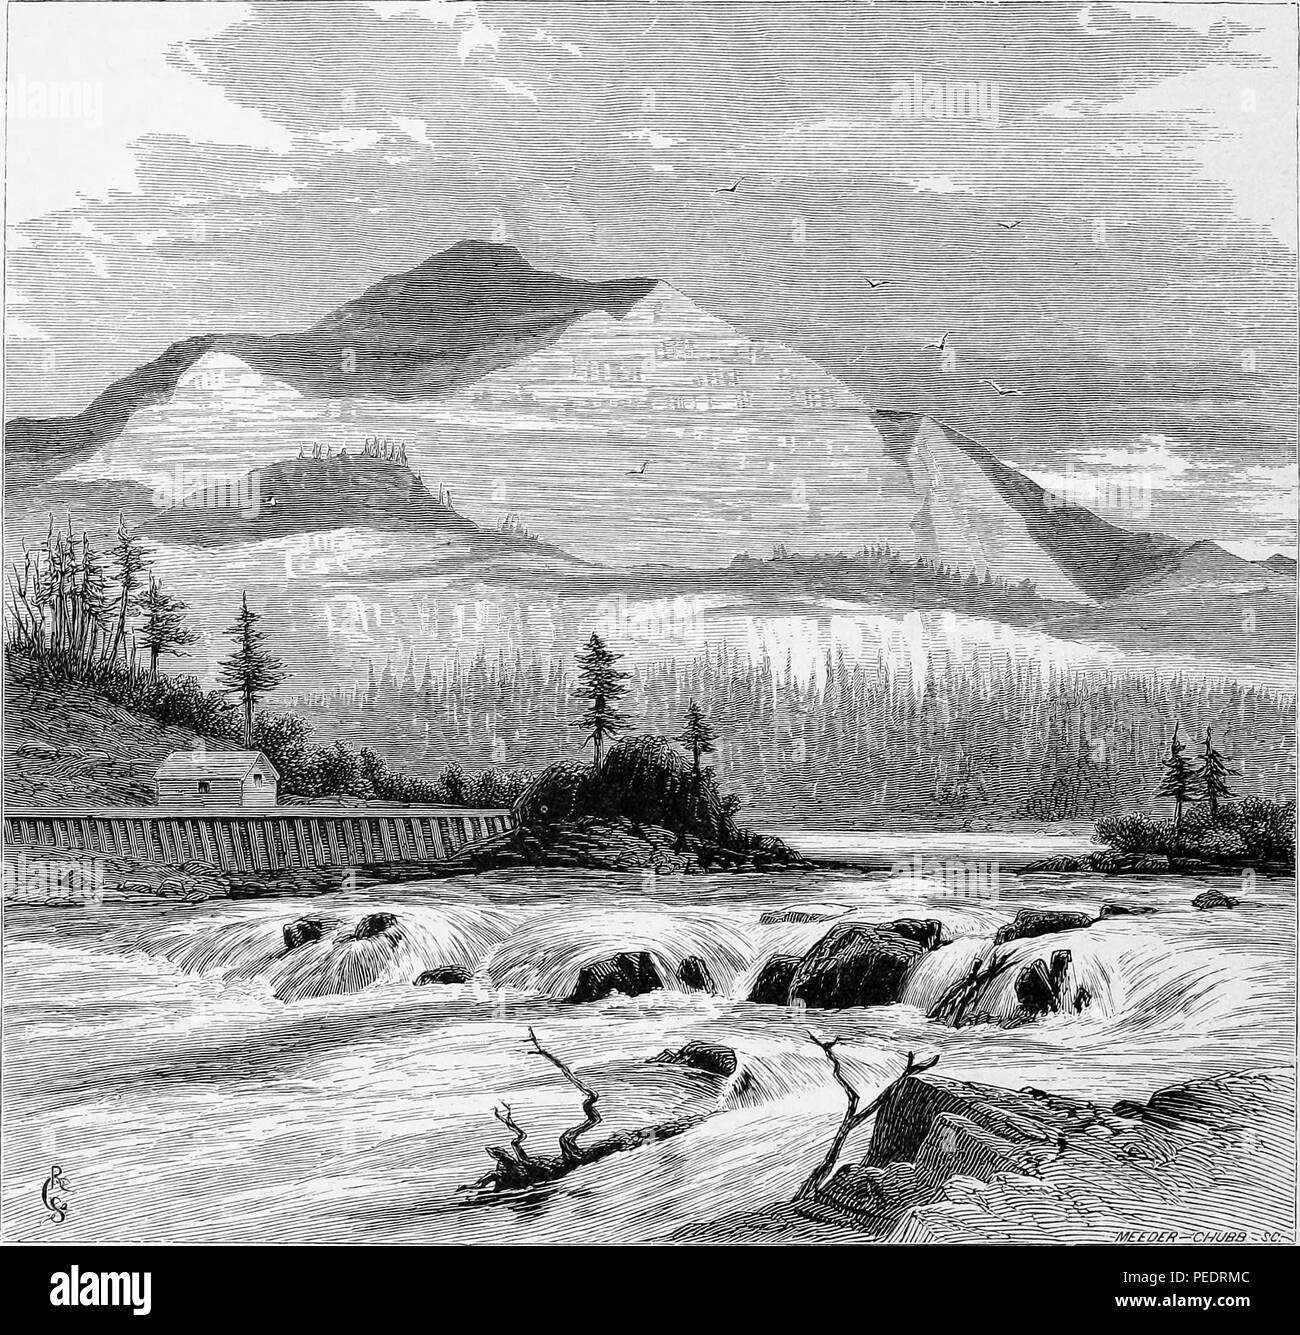 Black and white vintage print depicting the Columbia River's Cascades Rapids section, with a small, wooden building at midground and the Cascade Mountains rising in the background, located between the states of Washington and Oregon, in the USA, and published in William Cullen Bryant's edited volume 'Picturesque America; or, The Land We Live In', 1872. Courtesy Internet Archive. () Stock Photo